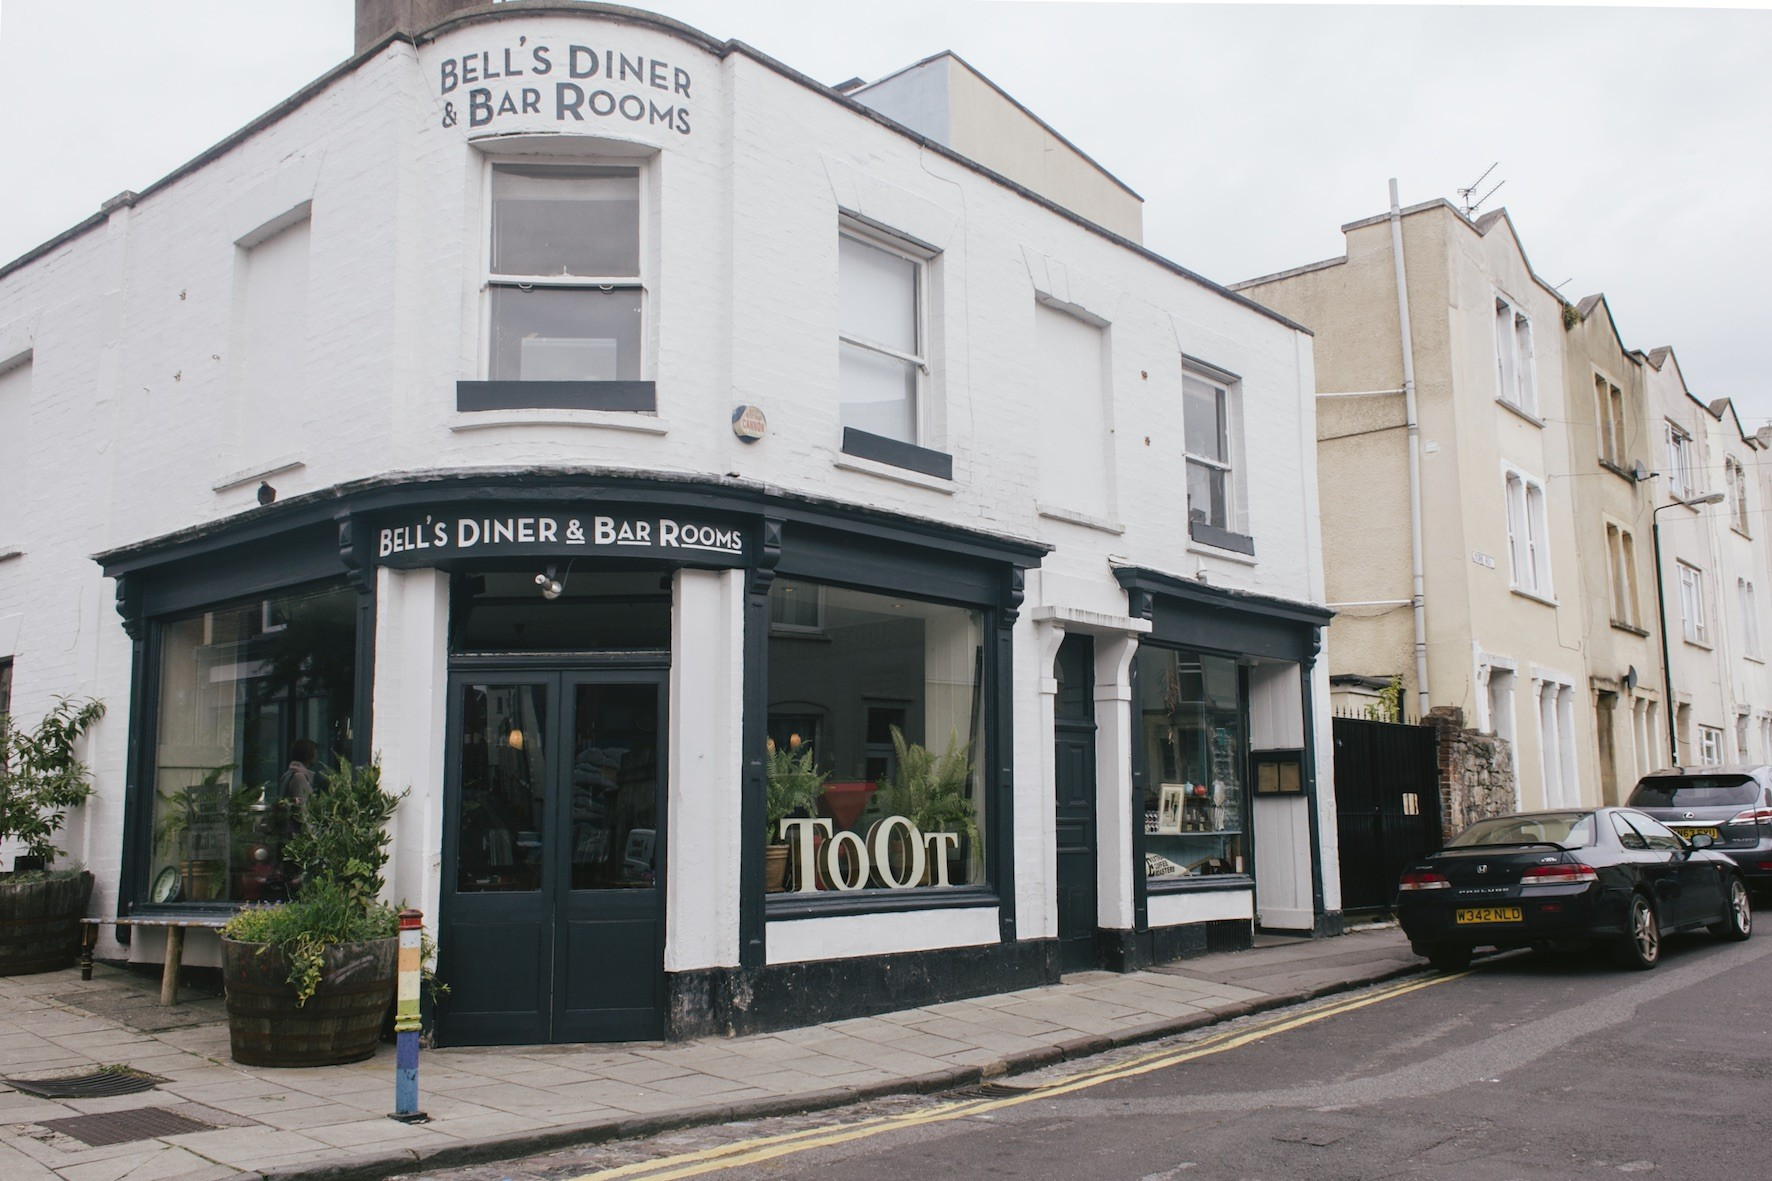 BELL'S DINER AND BAR ROOMS for hire